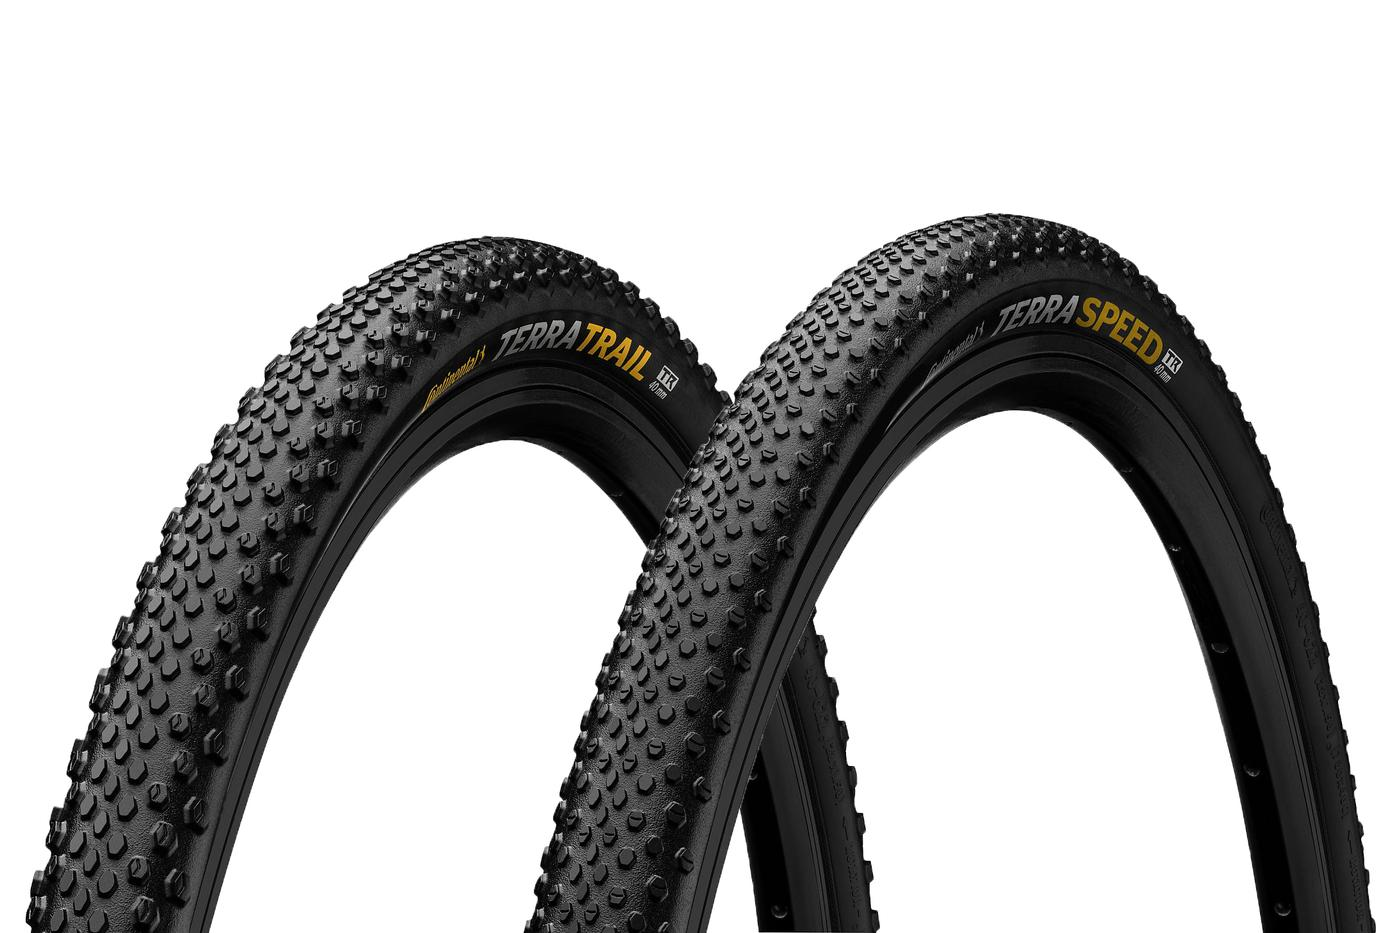 Continental Rolls Out the Terra Trail and Terra Speed Tires